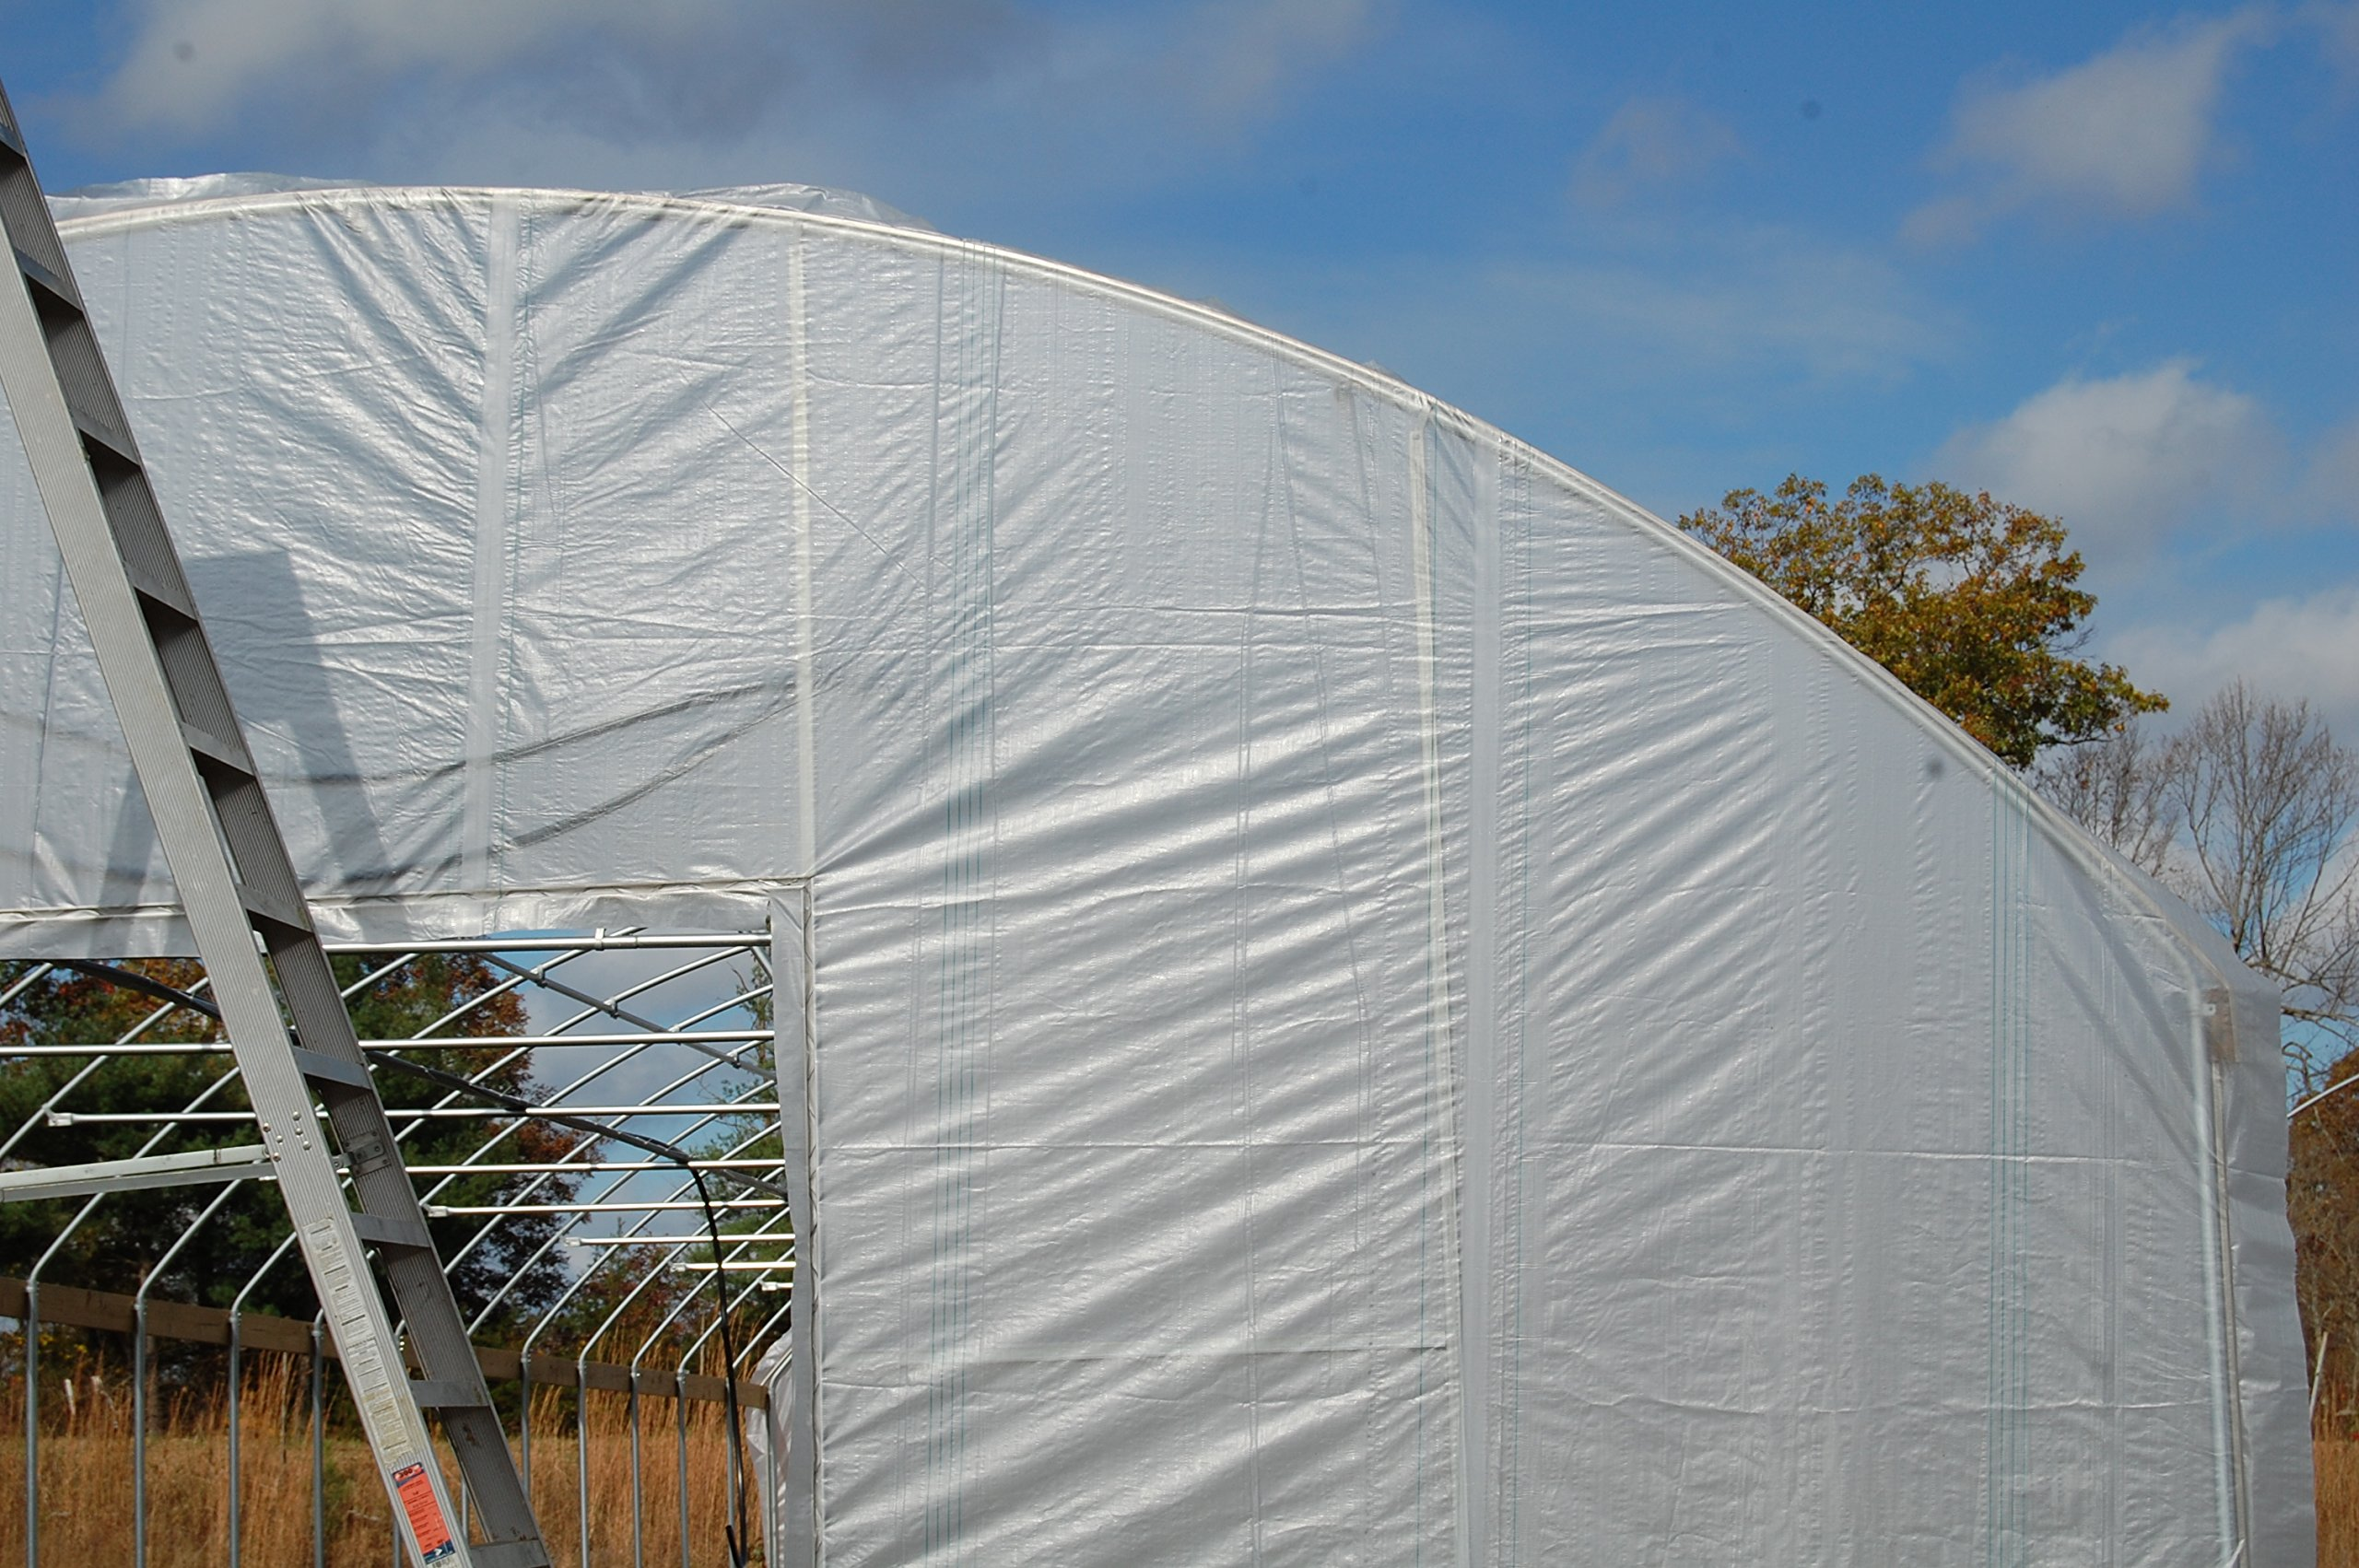 Greenhouse Clear Plastic Film Polyethylene Covering Gt4 Year 6 Mil 40ft. X 55ft. By Grower's Solution